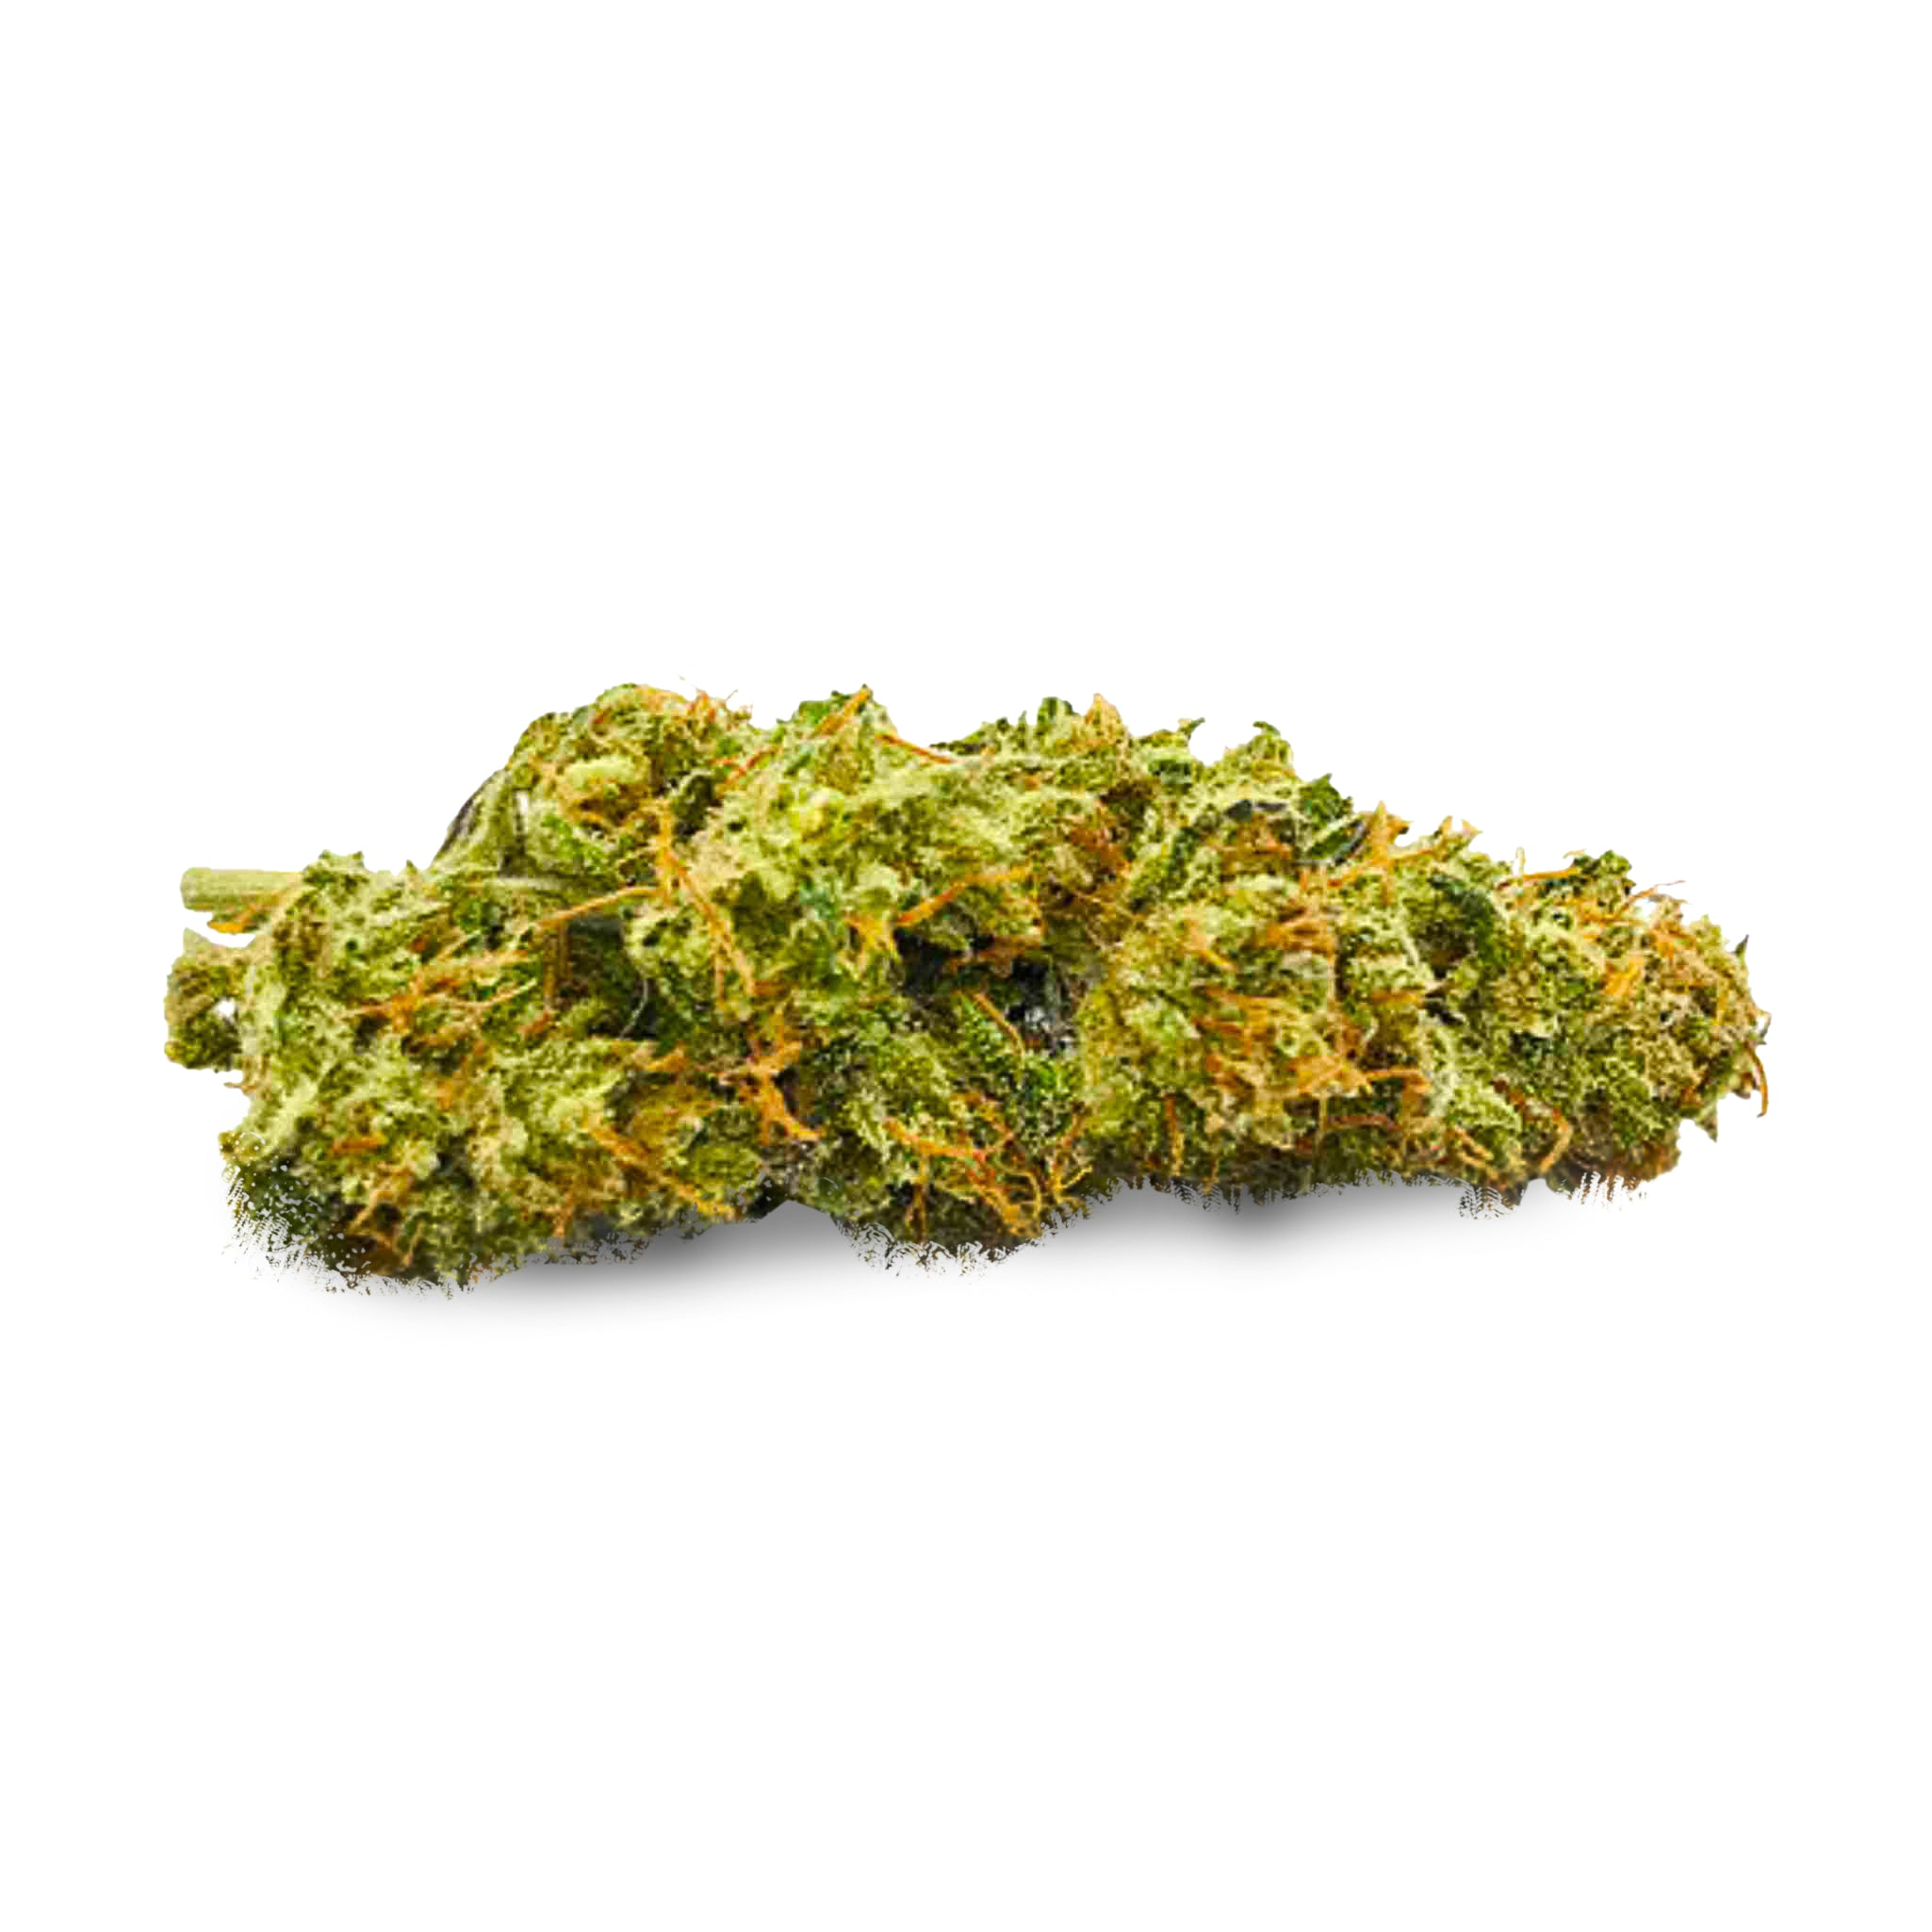 Fluffy Lemon Cream | Ganjah | CBD Cannabis | uWeed | Swiss CBD Shop